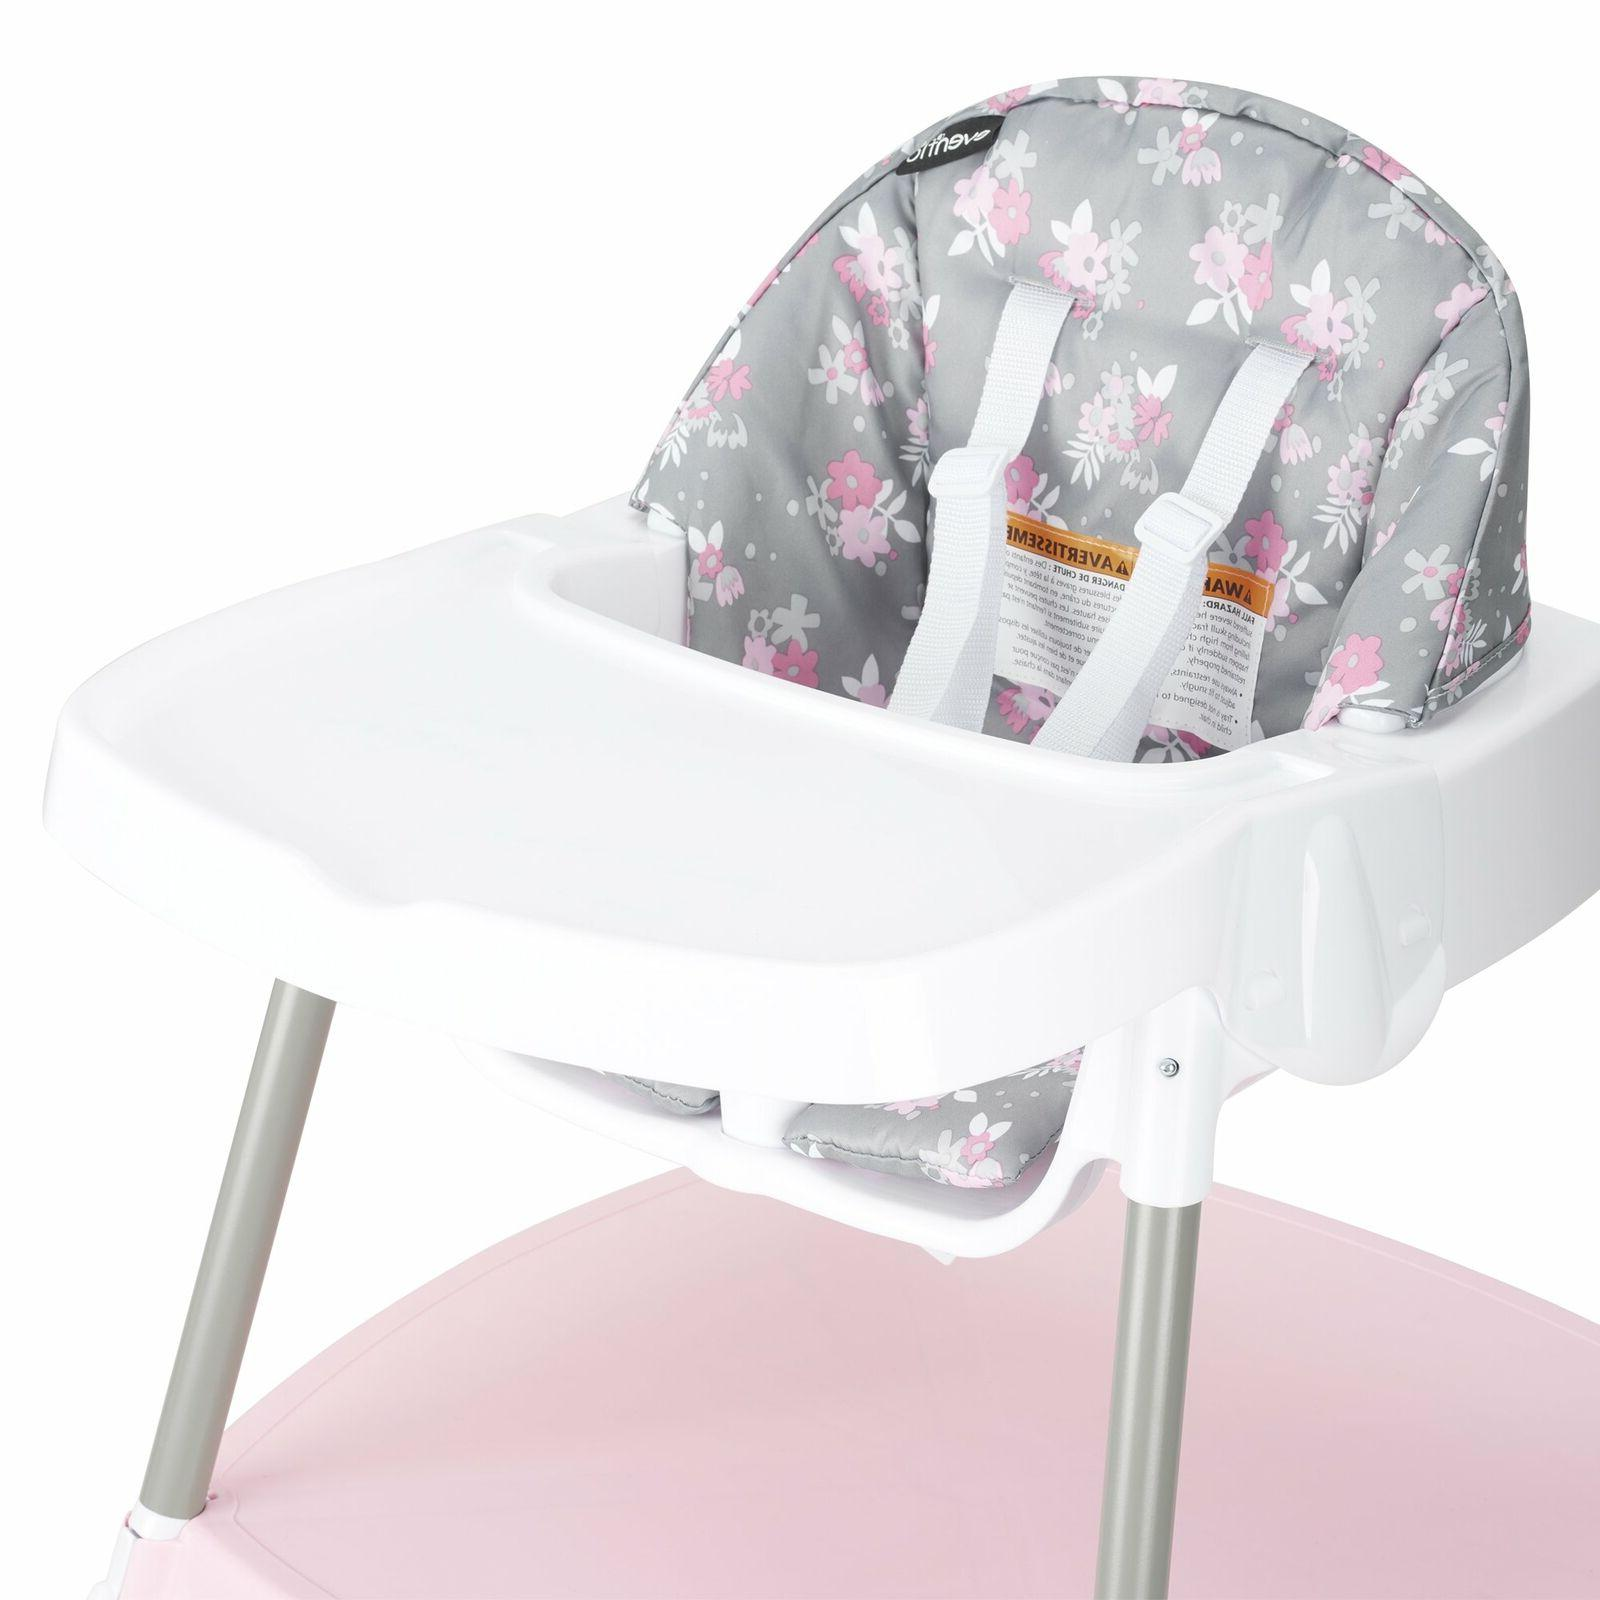 Evenflo 4-in-1 Eat & Grow Convertible HighChair Poppy Floral